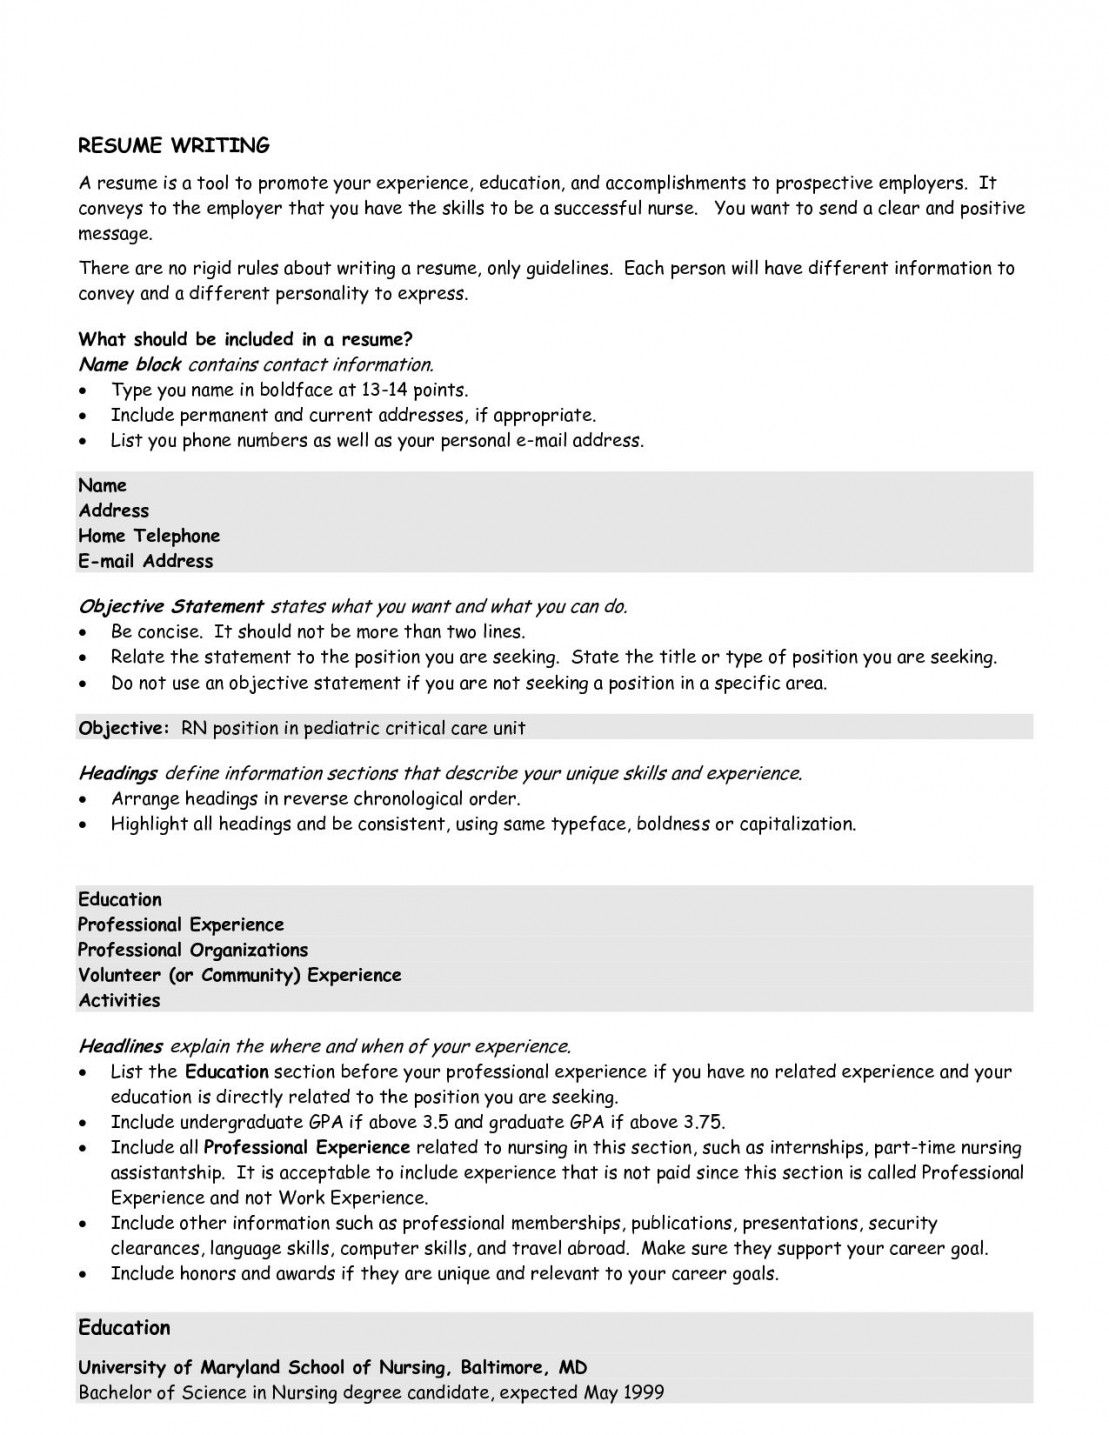 Resume Objective Statement Good Resume Objective Job Finance New Other Examples Statements For The Perfect Resume Objective resume objective statement wikiresume.com